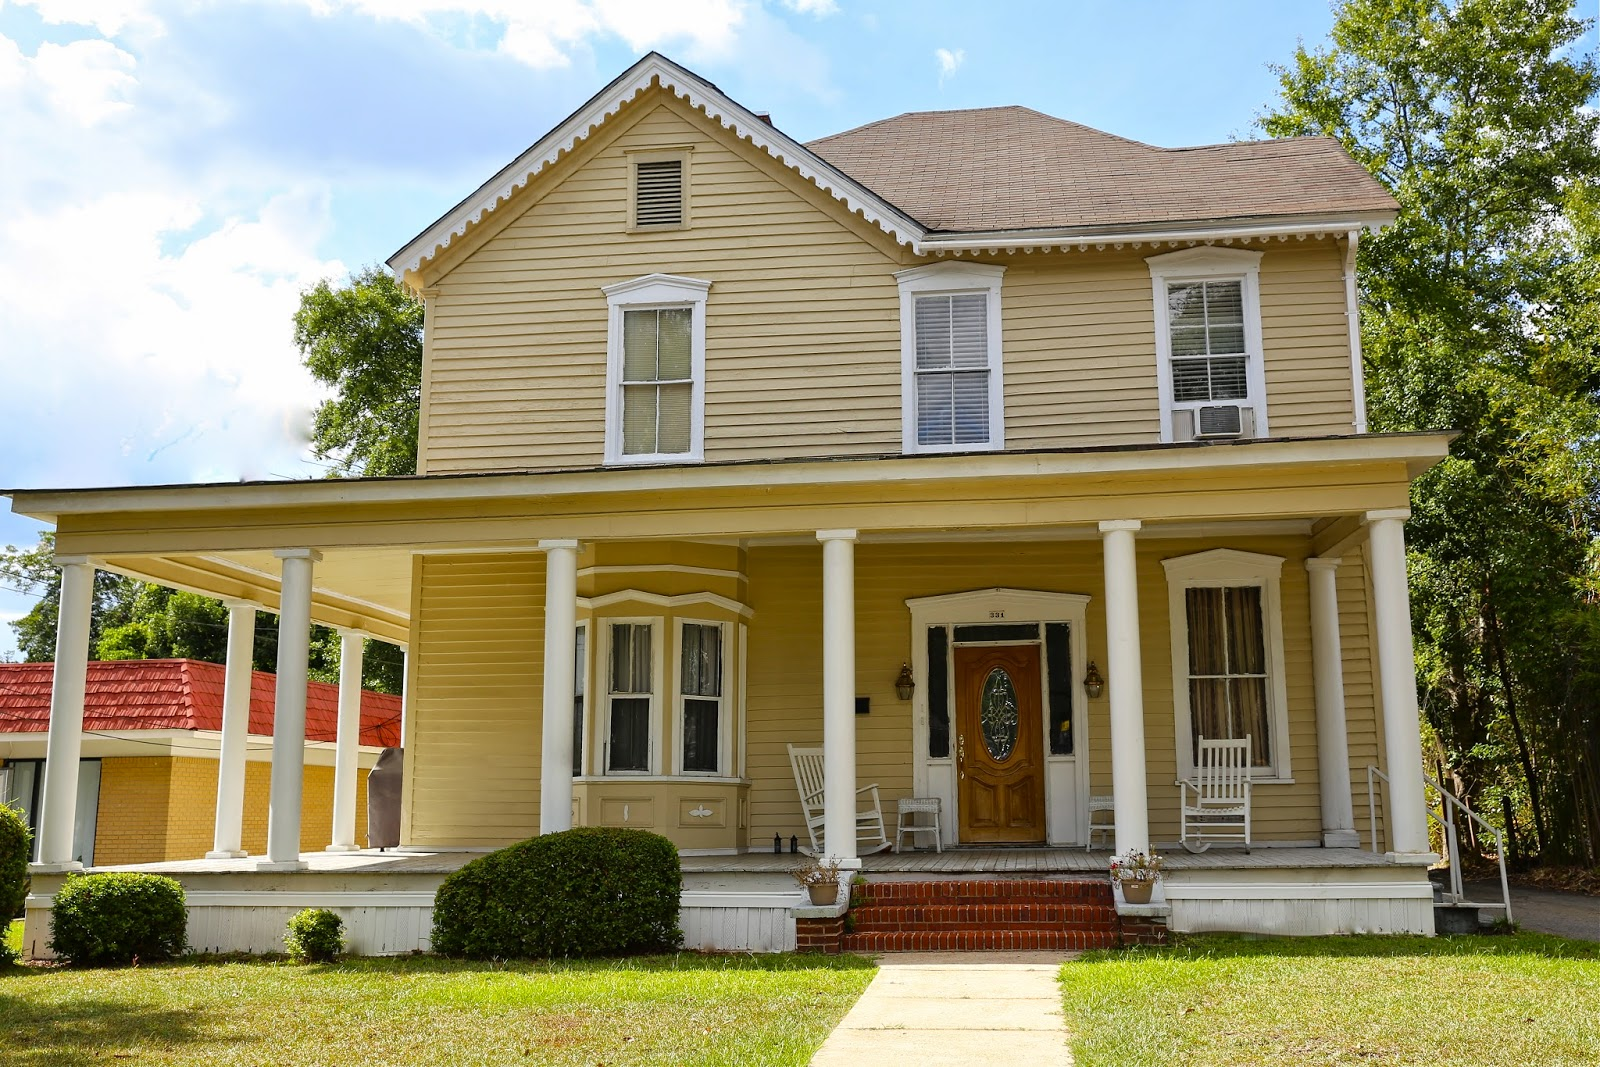 Sweet Southern Days: Historic Homes in Thomasville, Georgia